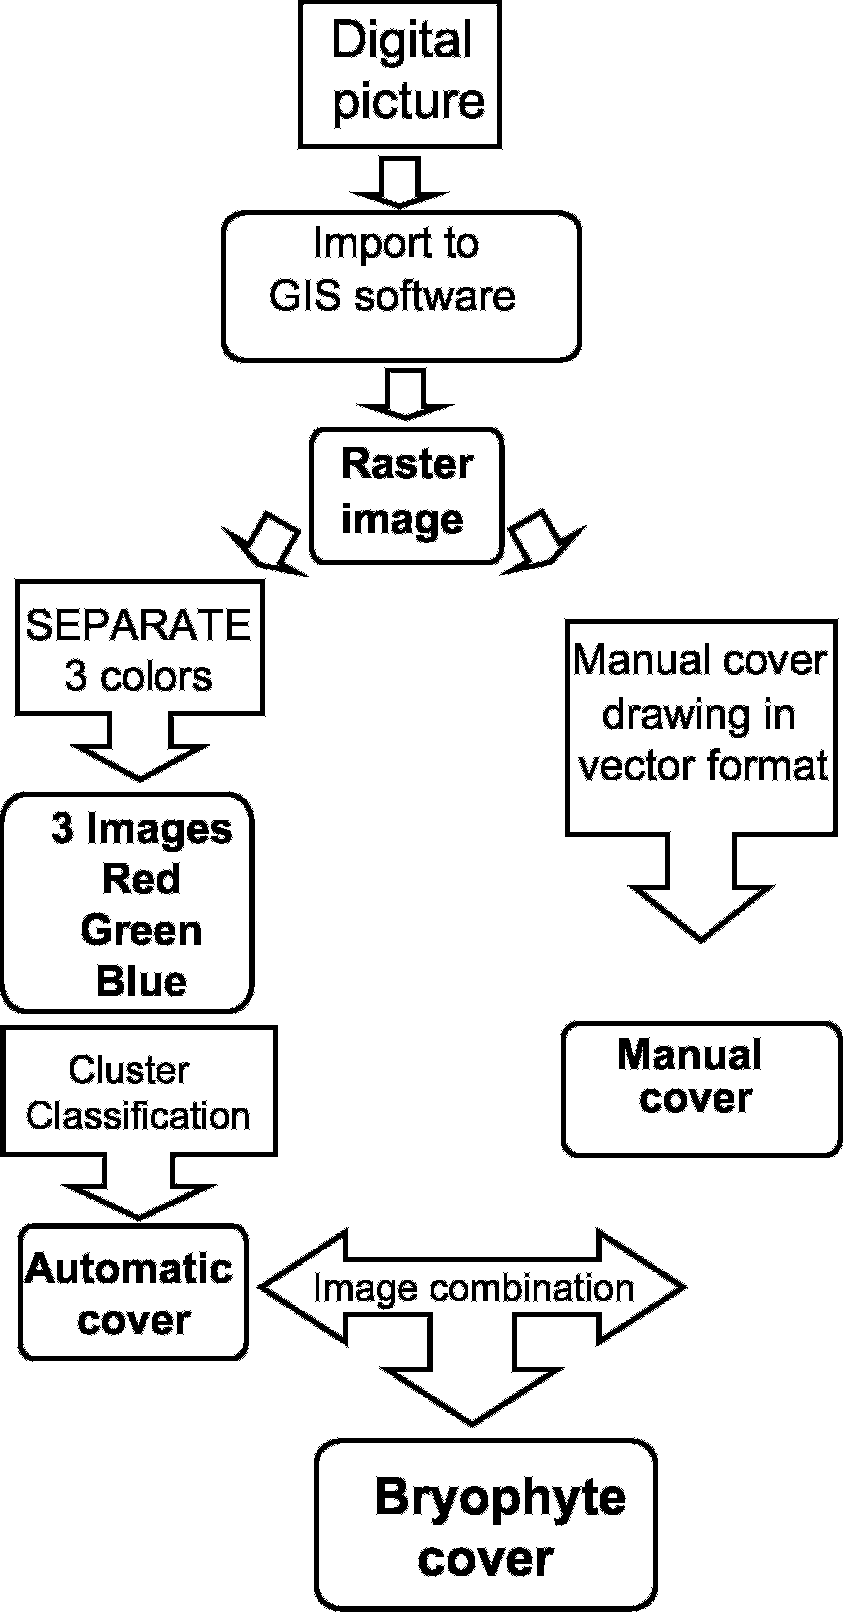 hight resolution of diagram of the successive steps to estimate bryophyte cover from digitized images using idrisi kilimanjaro software